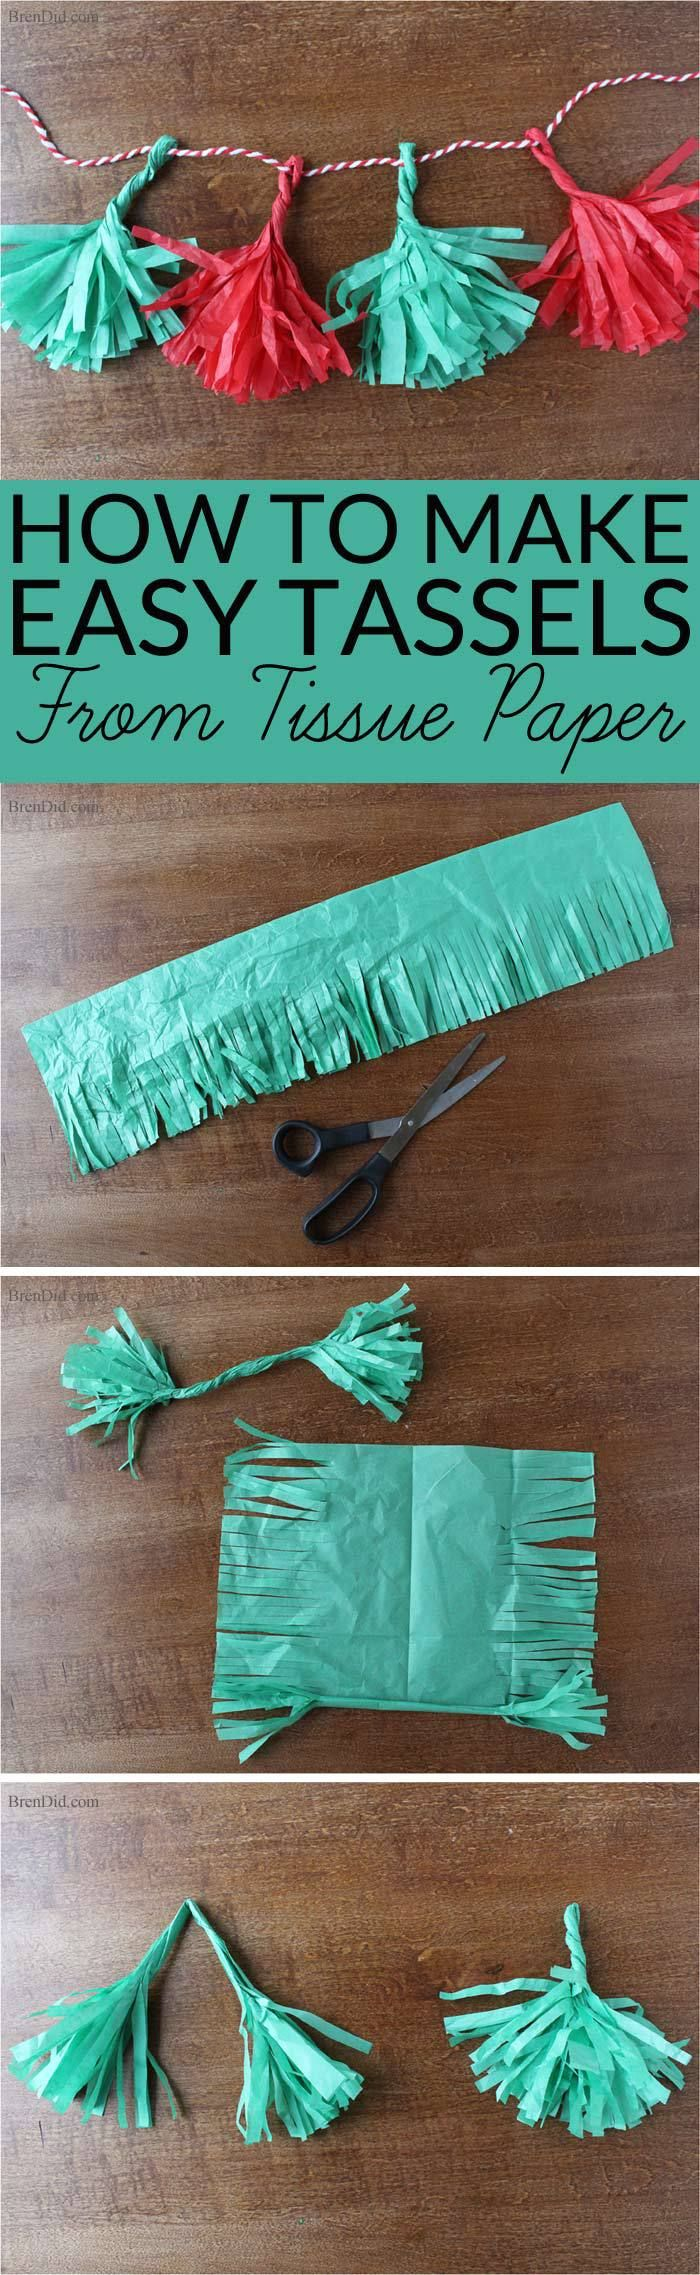 How to Make Tassels from Tissue Paper - Make your own free eco-friendly paper tassels for garlands and gift tie-ons using just tissue…